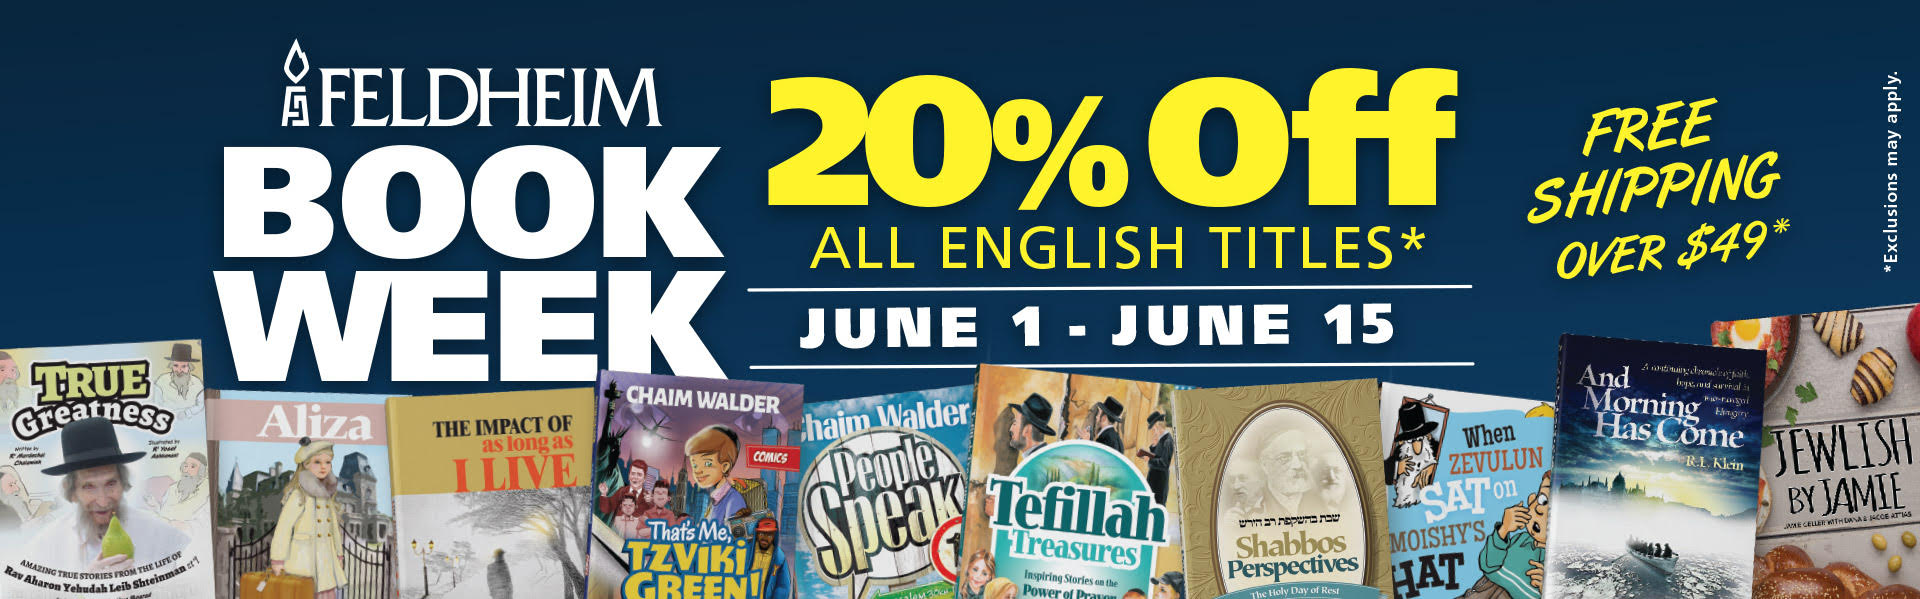 BOOK WEEK BEGINS! 20% off most English Titles